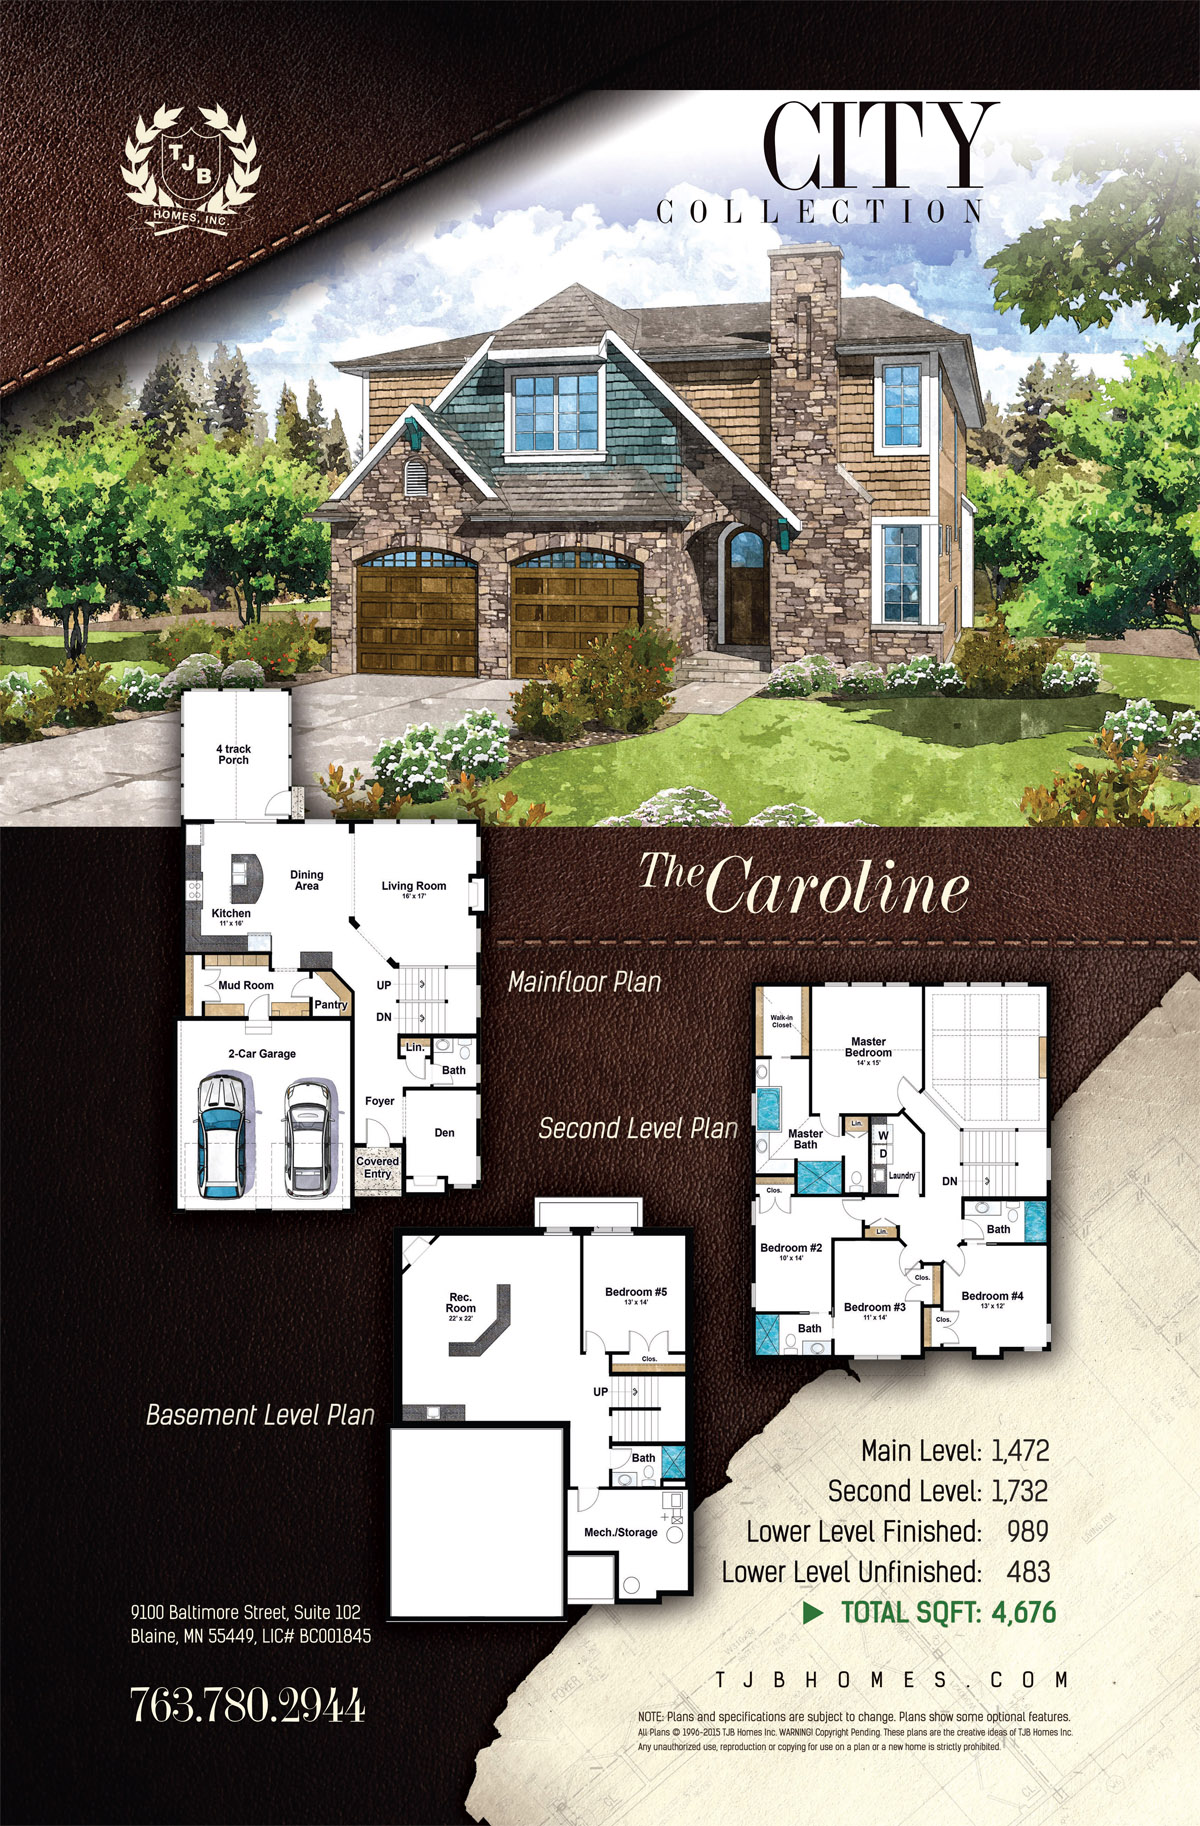 City Collection Home Plans - The Caroline